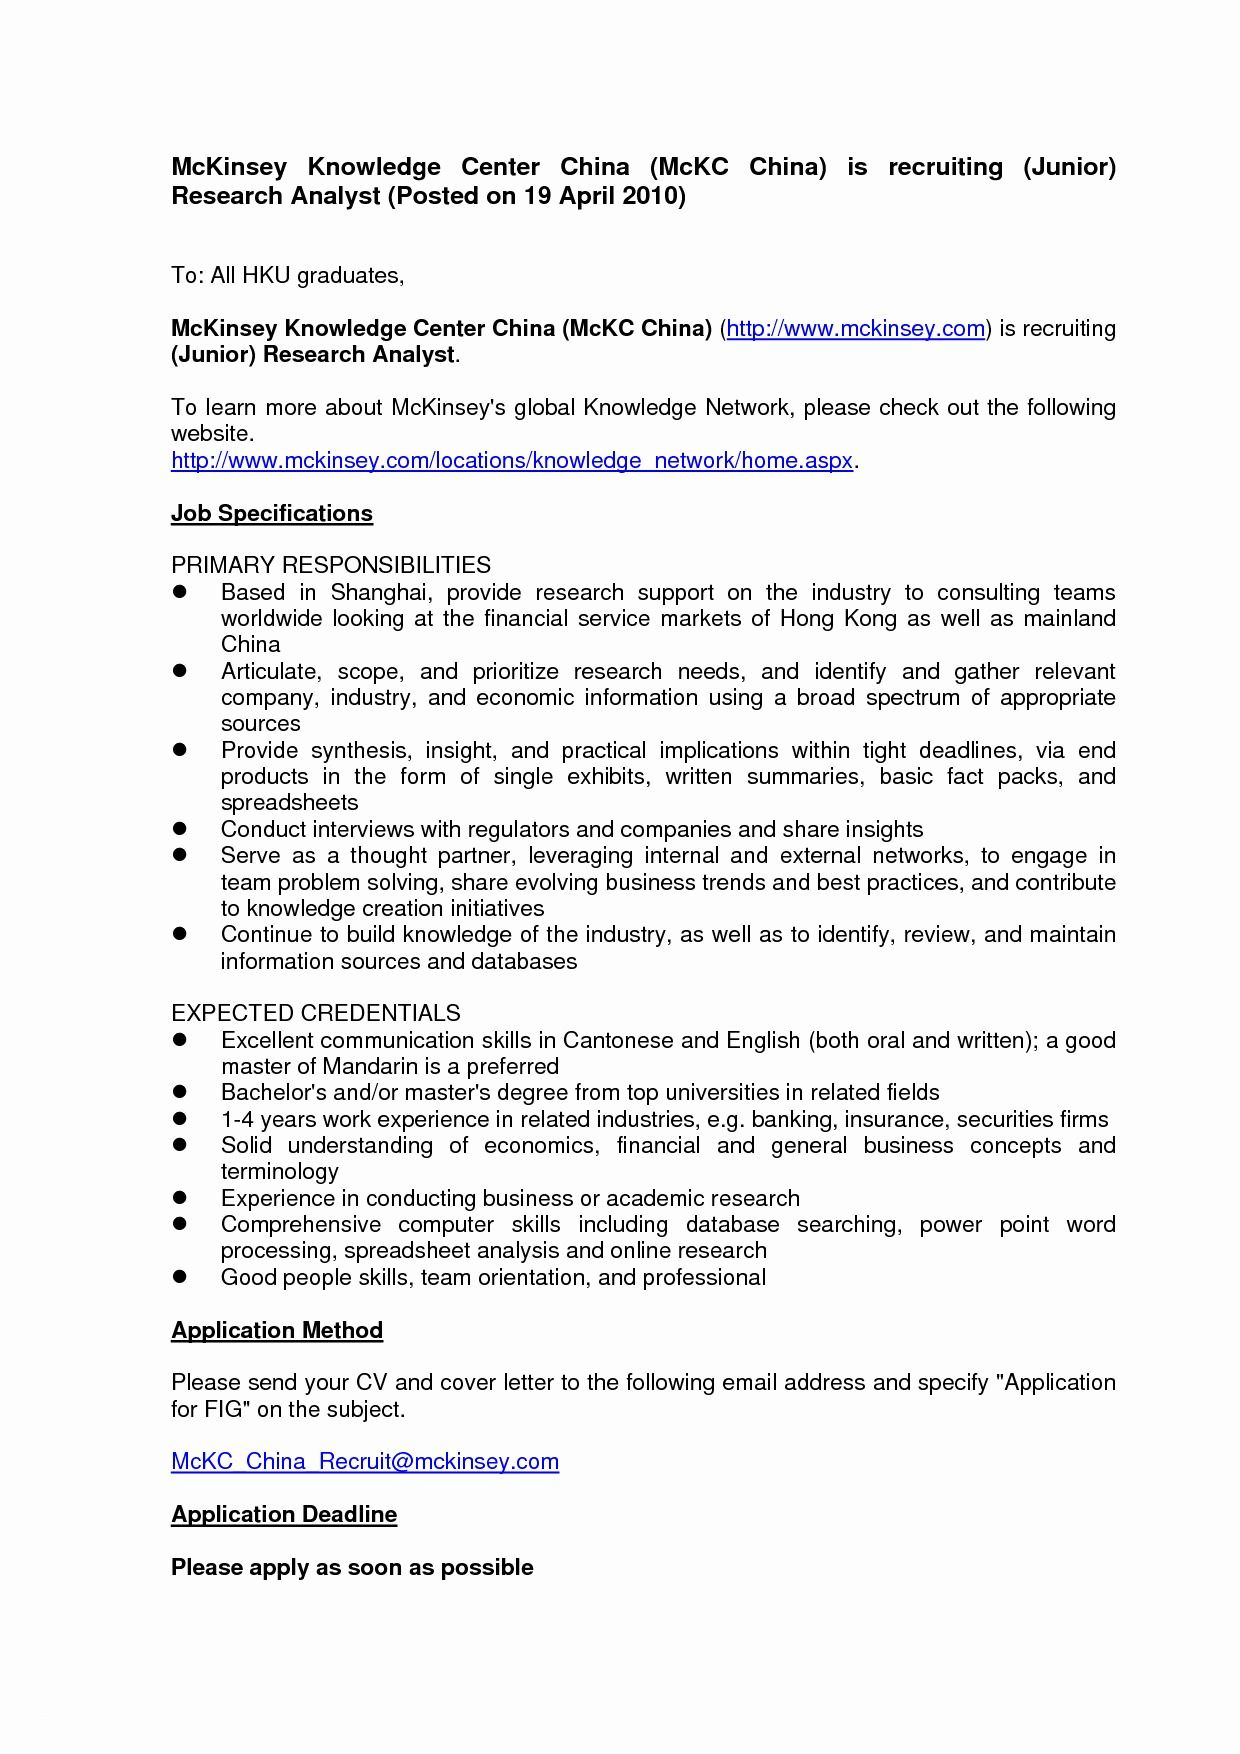 Cover Letter To Bcg - Sample cover letter for Full Time ...